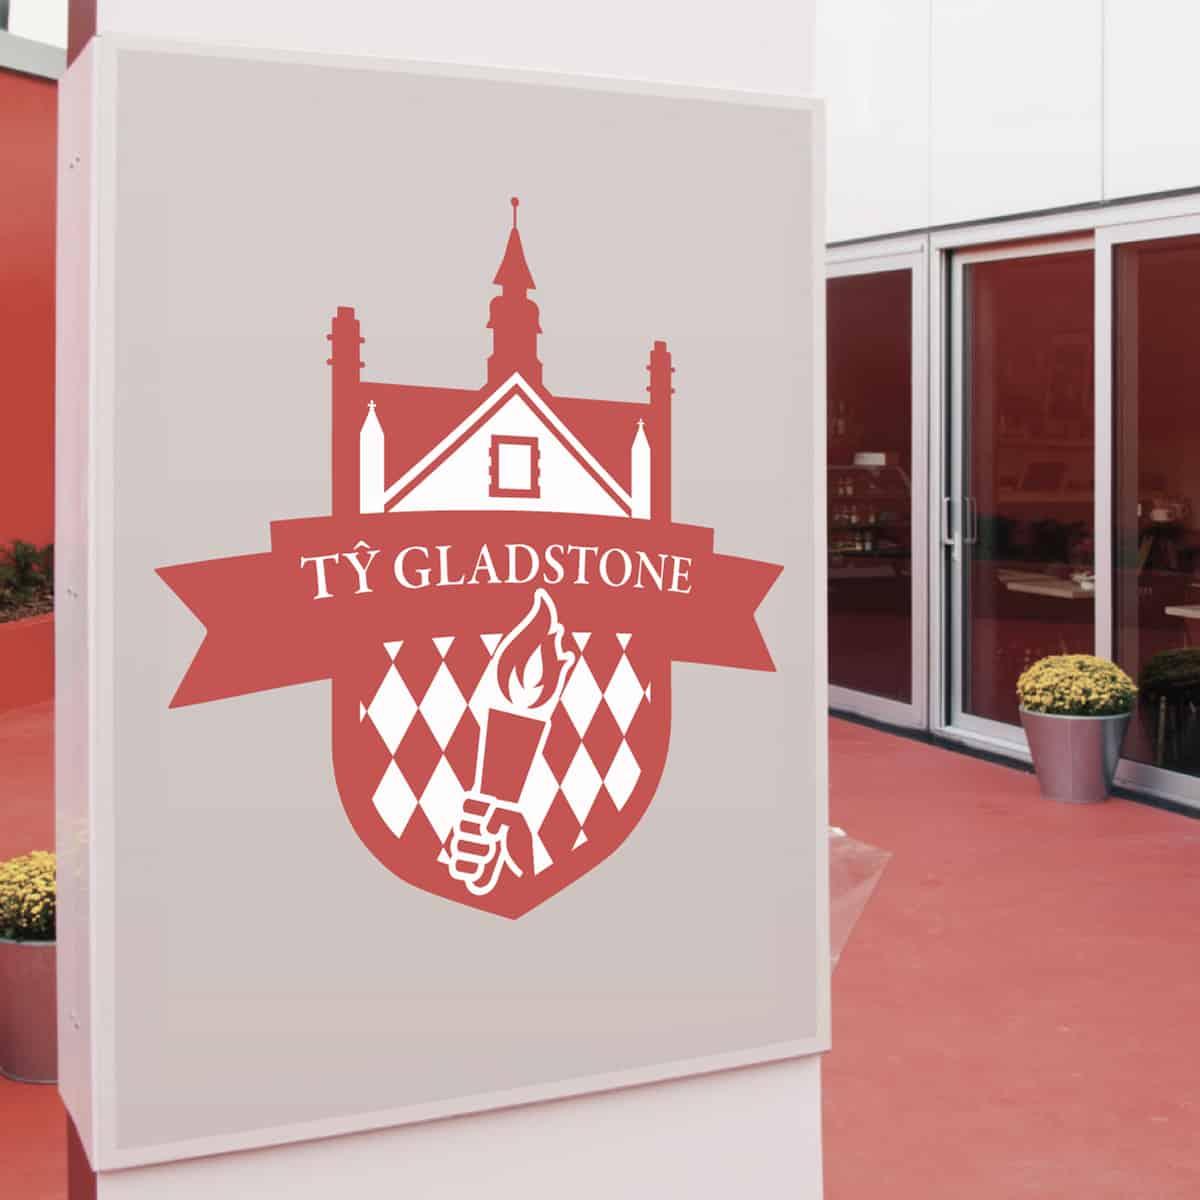 house-logo-high school-secondary school-oxfordshire-design-logo-great-modern-clean-red